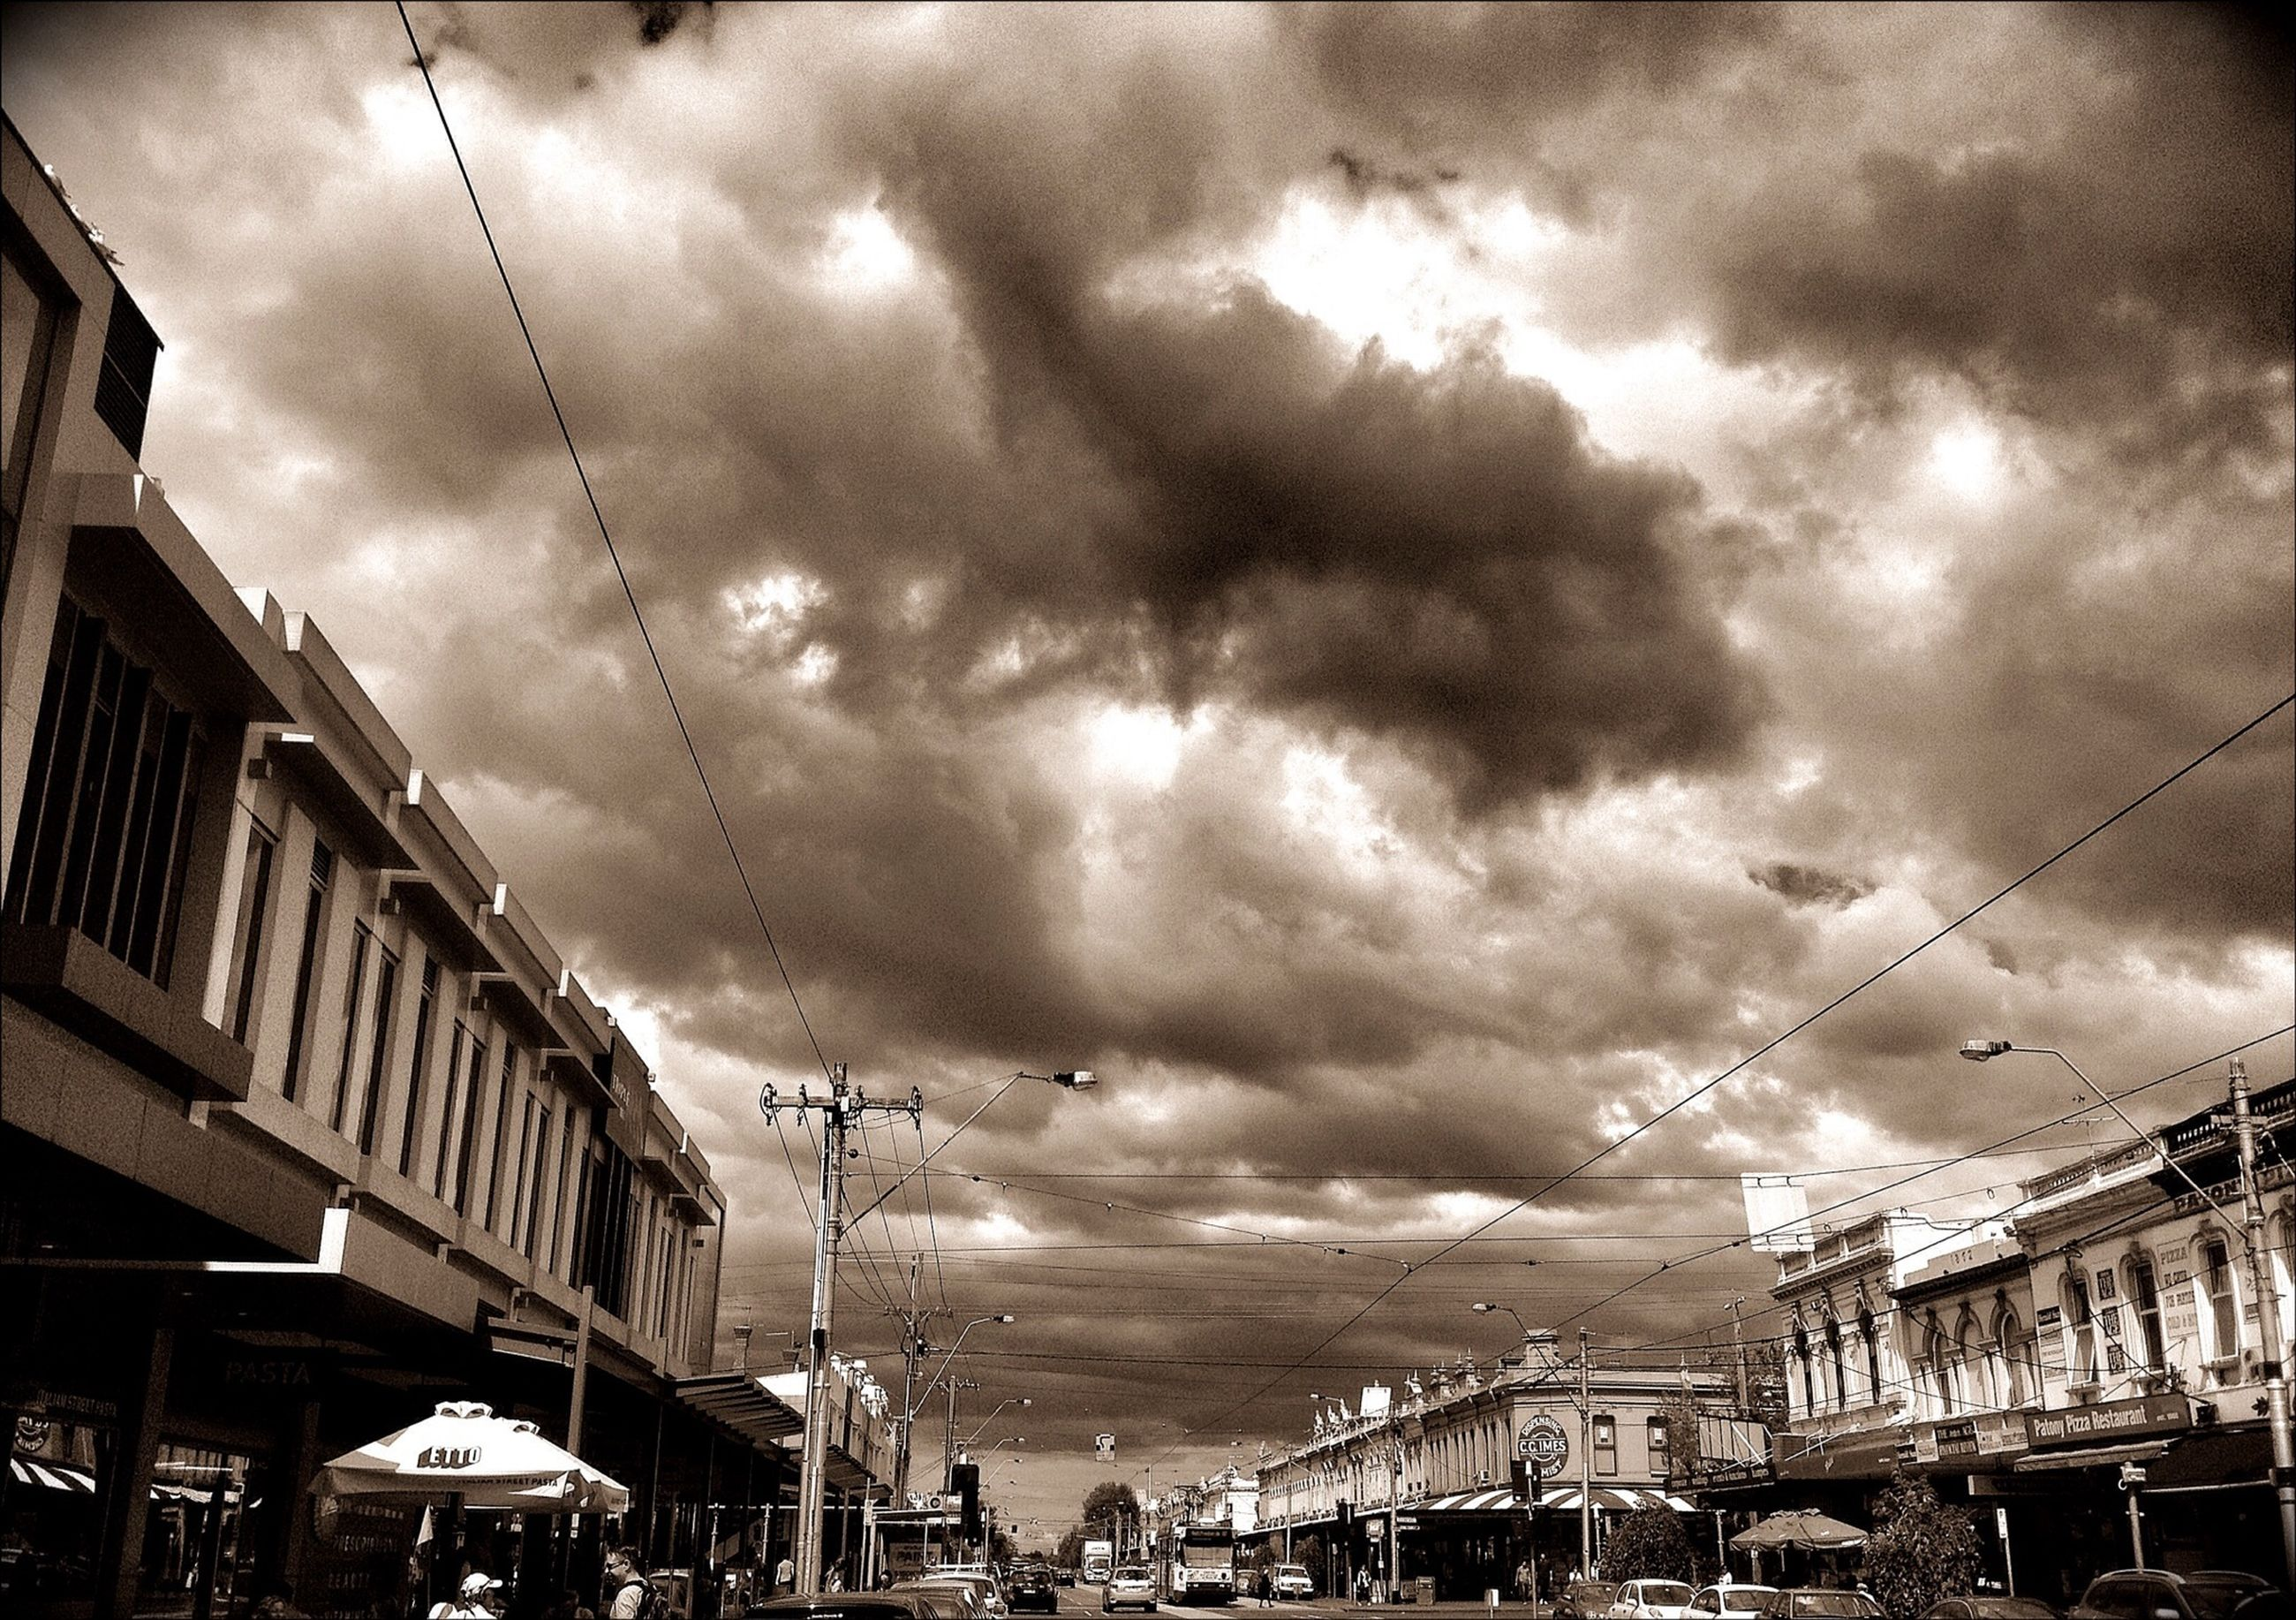 sky, cloud - sky, cloudy, building exterior, architecture, built structure, weather, storm cloud, overcast, low angle view, cloud, city, transportation, dusk, power line, residential building, residential structure, outdoors, mode of transport, dramatic sky